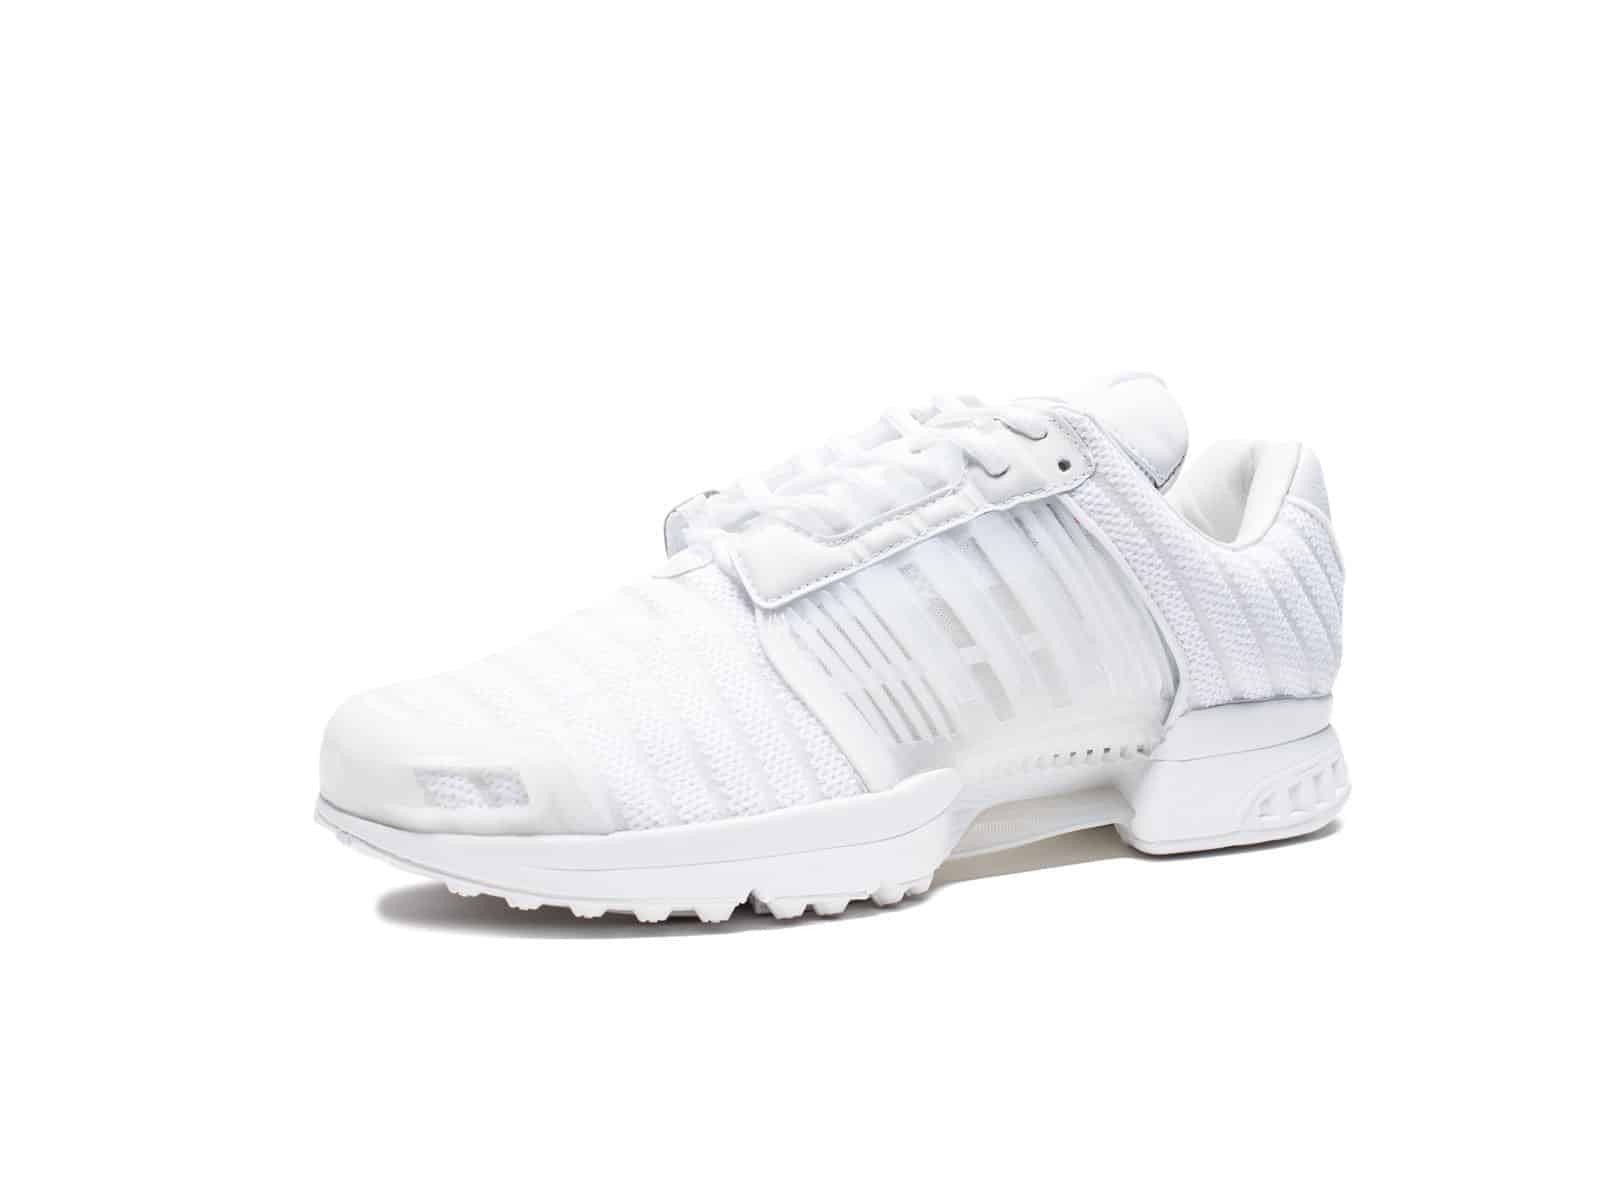 new concept 8f52b d63f4 SNEAKERBOY X WISH CLIMACOOL 1 PK - WHITE | Undefeated